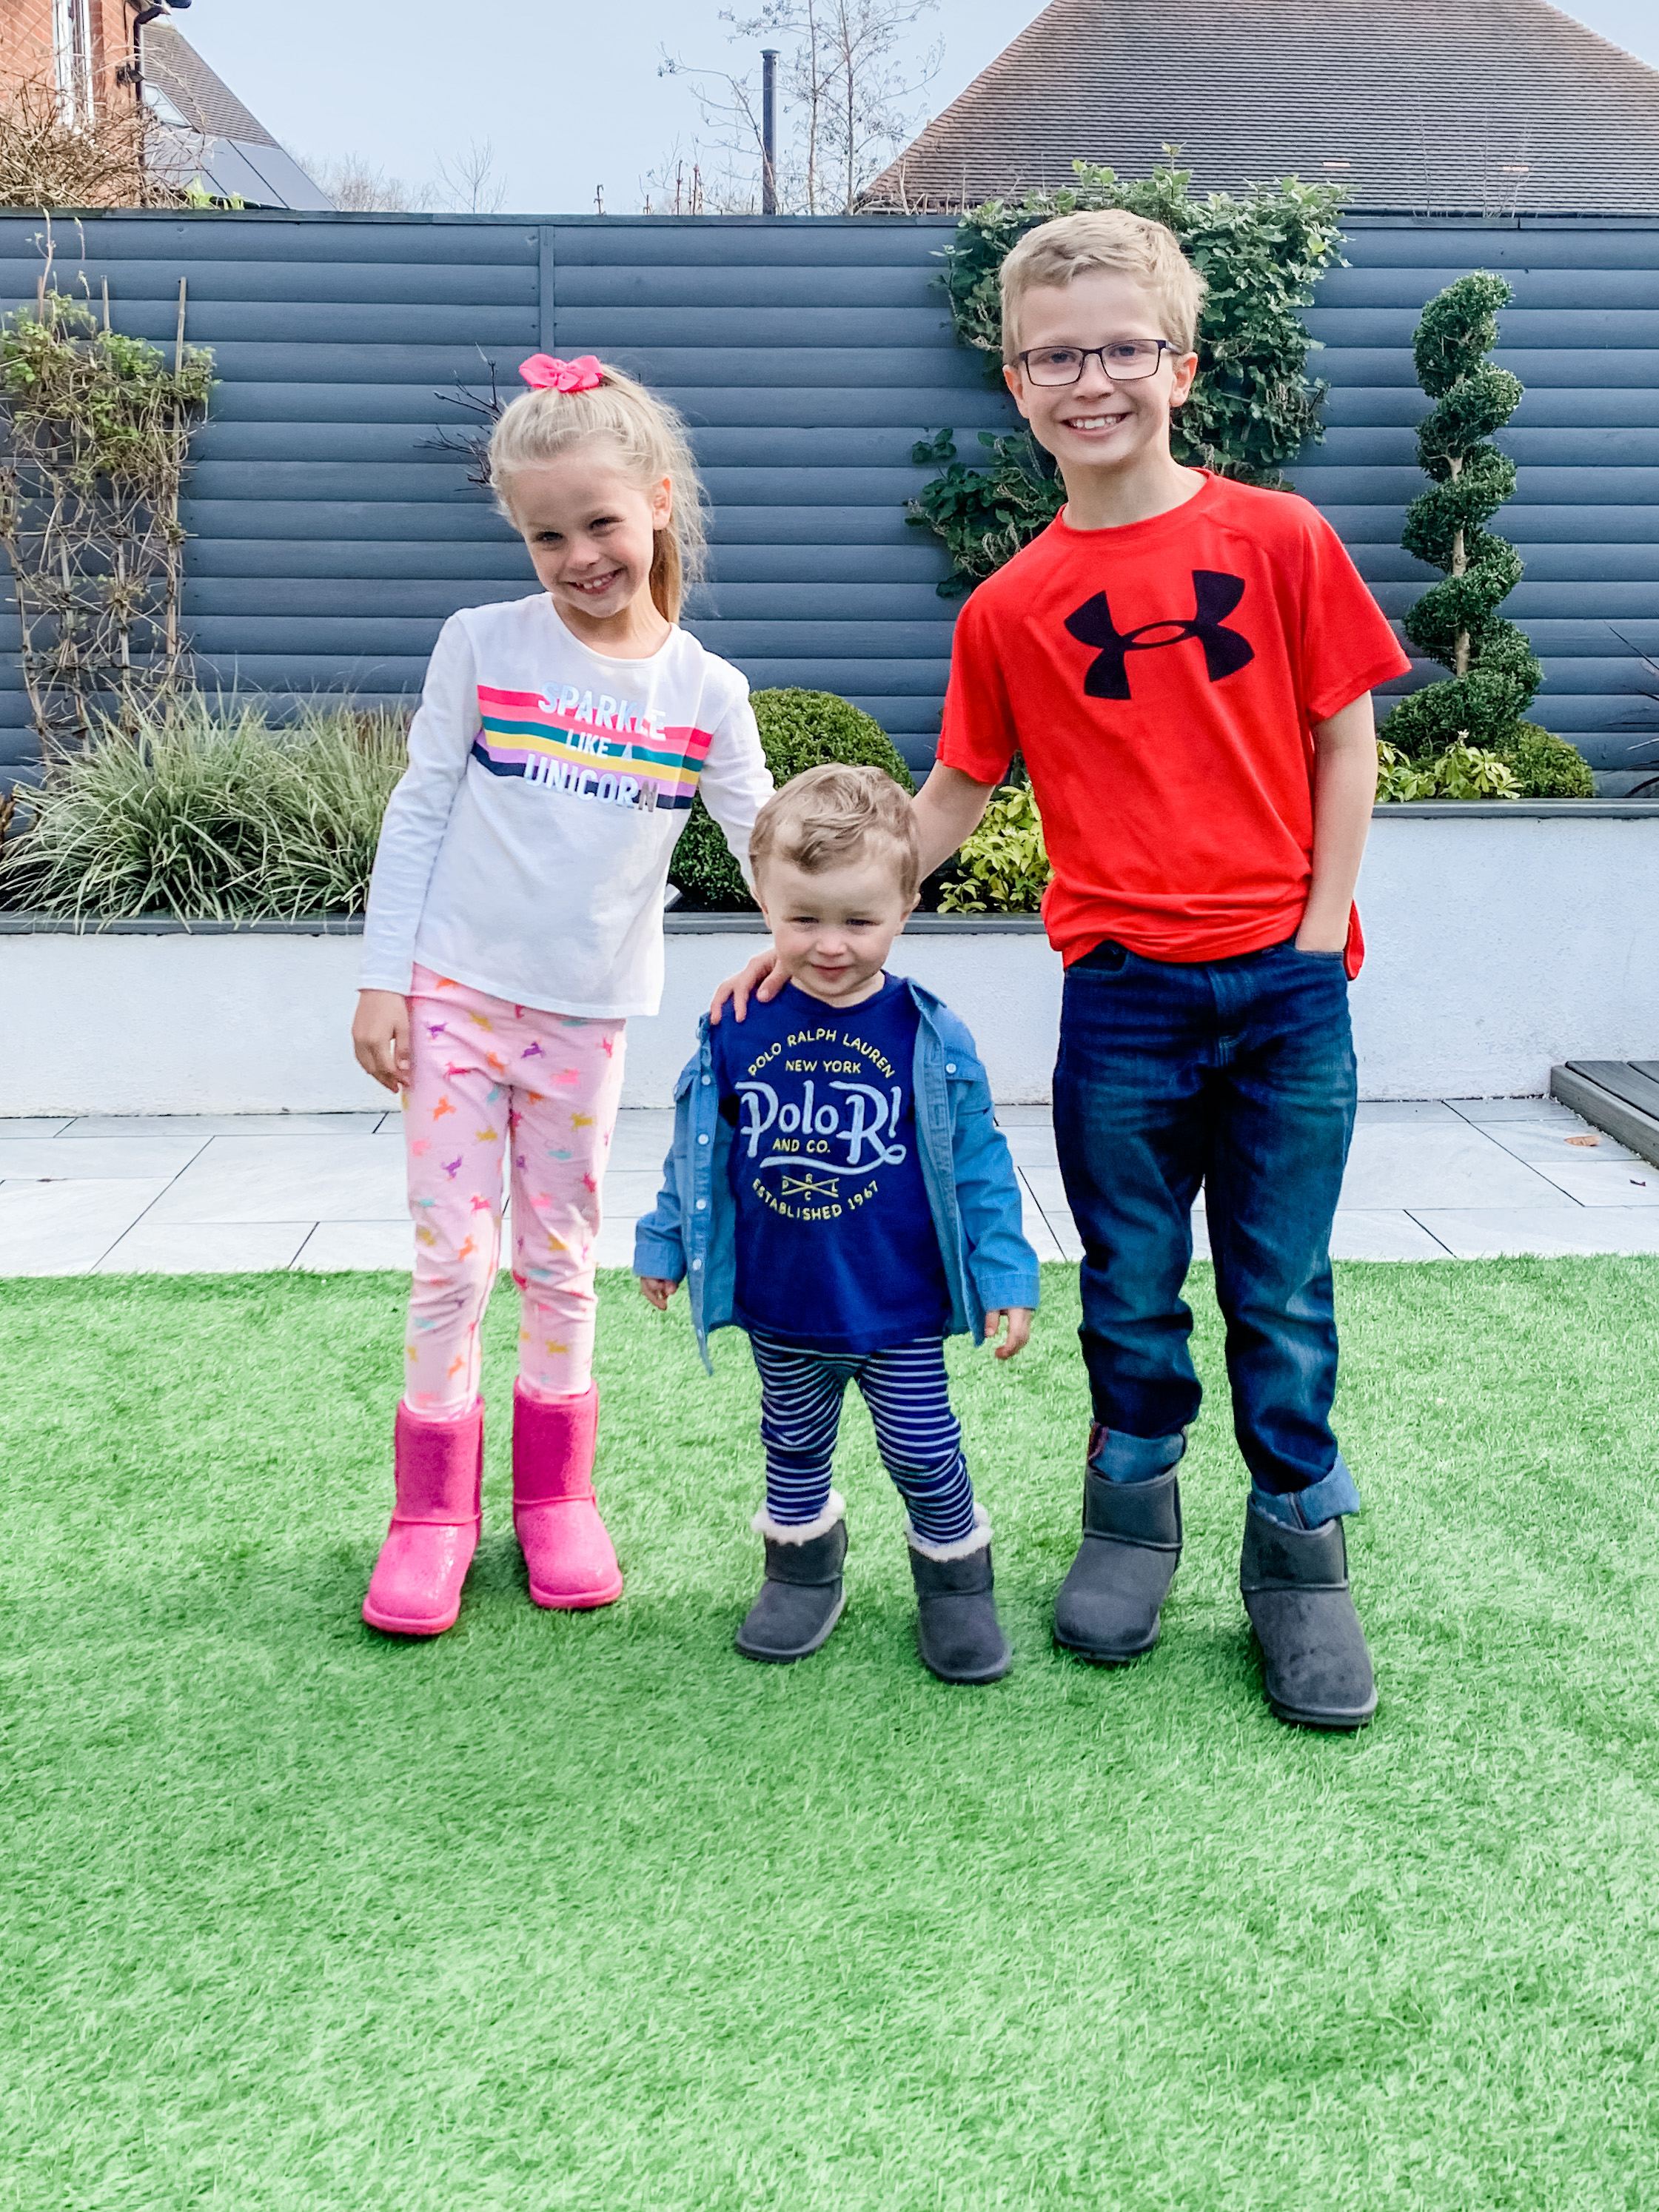 3 children standing in the garden smiling for the camera and wearing matching boots